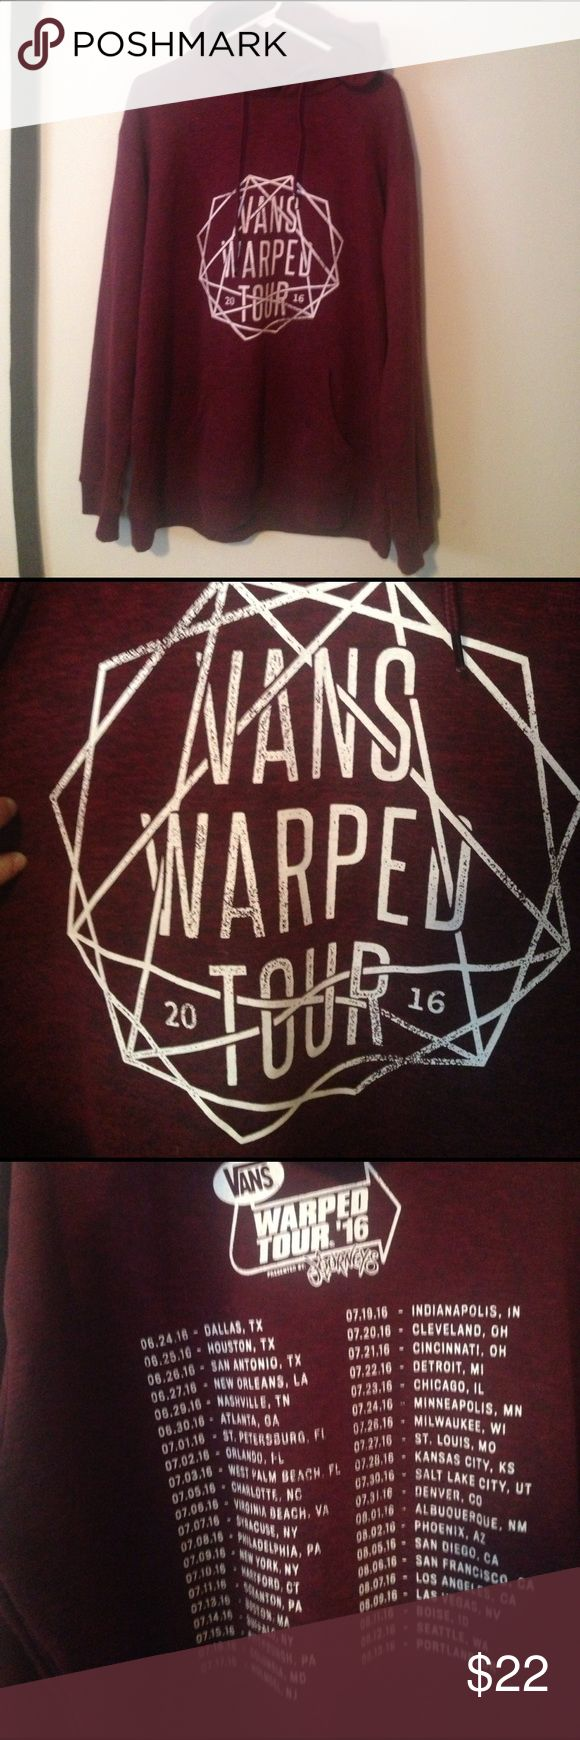 "Brand New Vans Warped Tour 2016 Hoodie!!!! This is a brand new, NEVER WORN, XXL burgundy unisex hoodie purchased for $40 at the 2016 Vans Warped Tour in Camden, NJ. The color in the picture is very true to life and it has what is usually called a ""heathered"" look. It has a drawstring hood and cozy kangaroo-pouch pocket. No flaws, never worn, and cannot be found in online merch stores. Show your Warped cred before this year's fest even starts! Regret not picking one up last year? Well now you…"